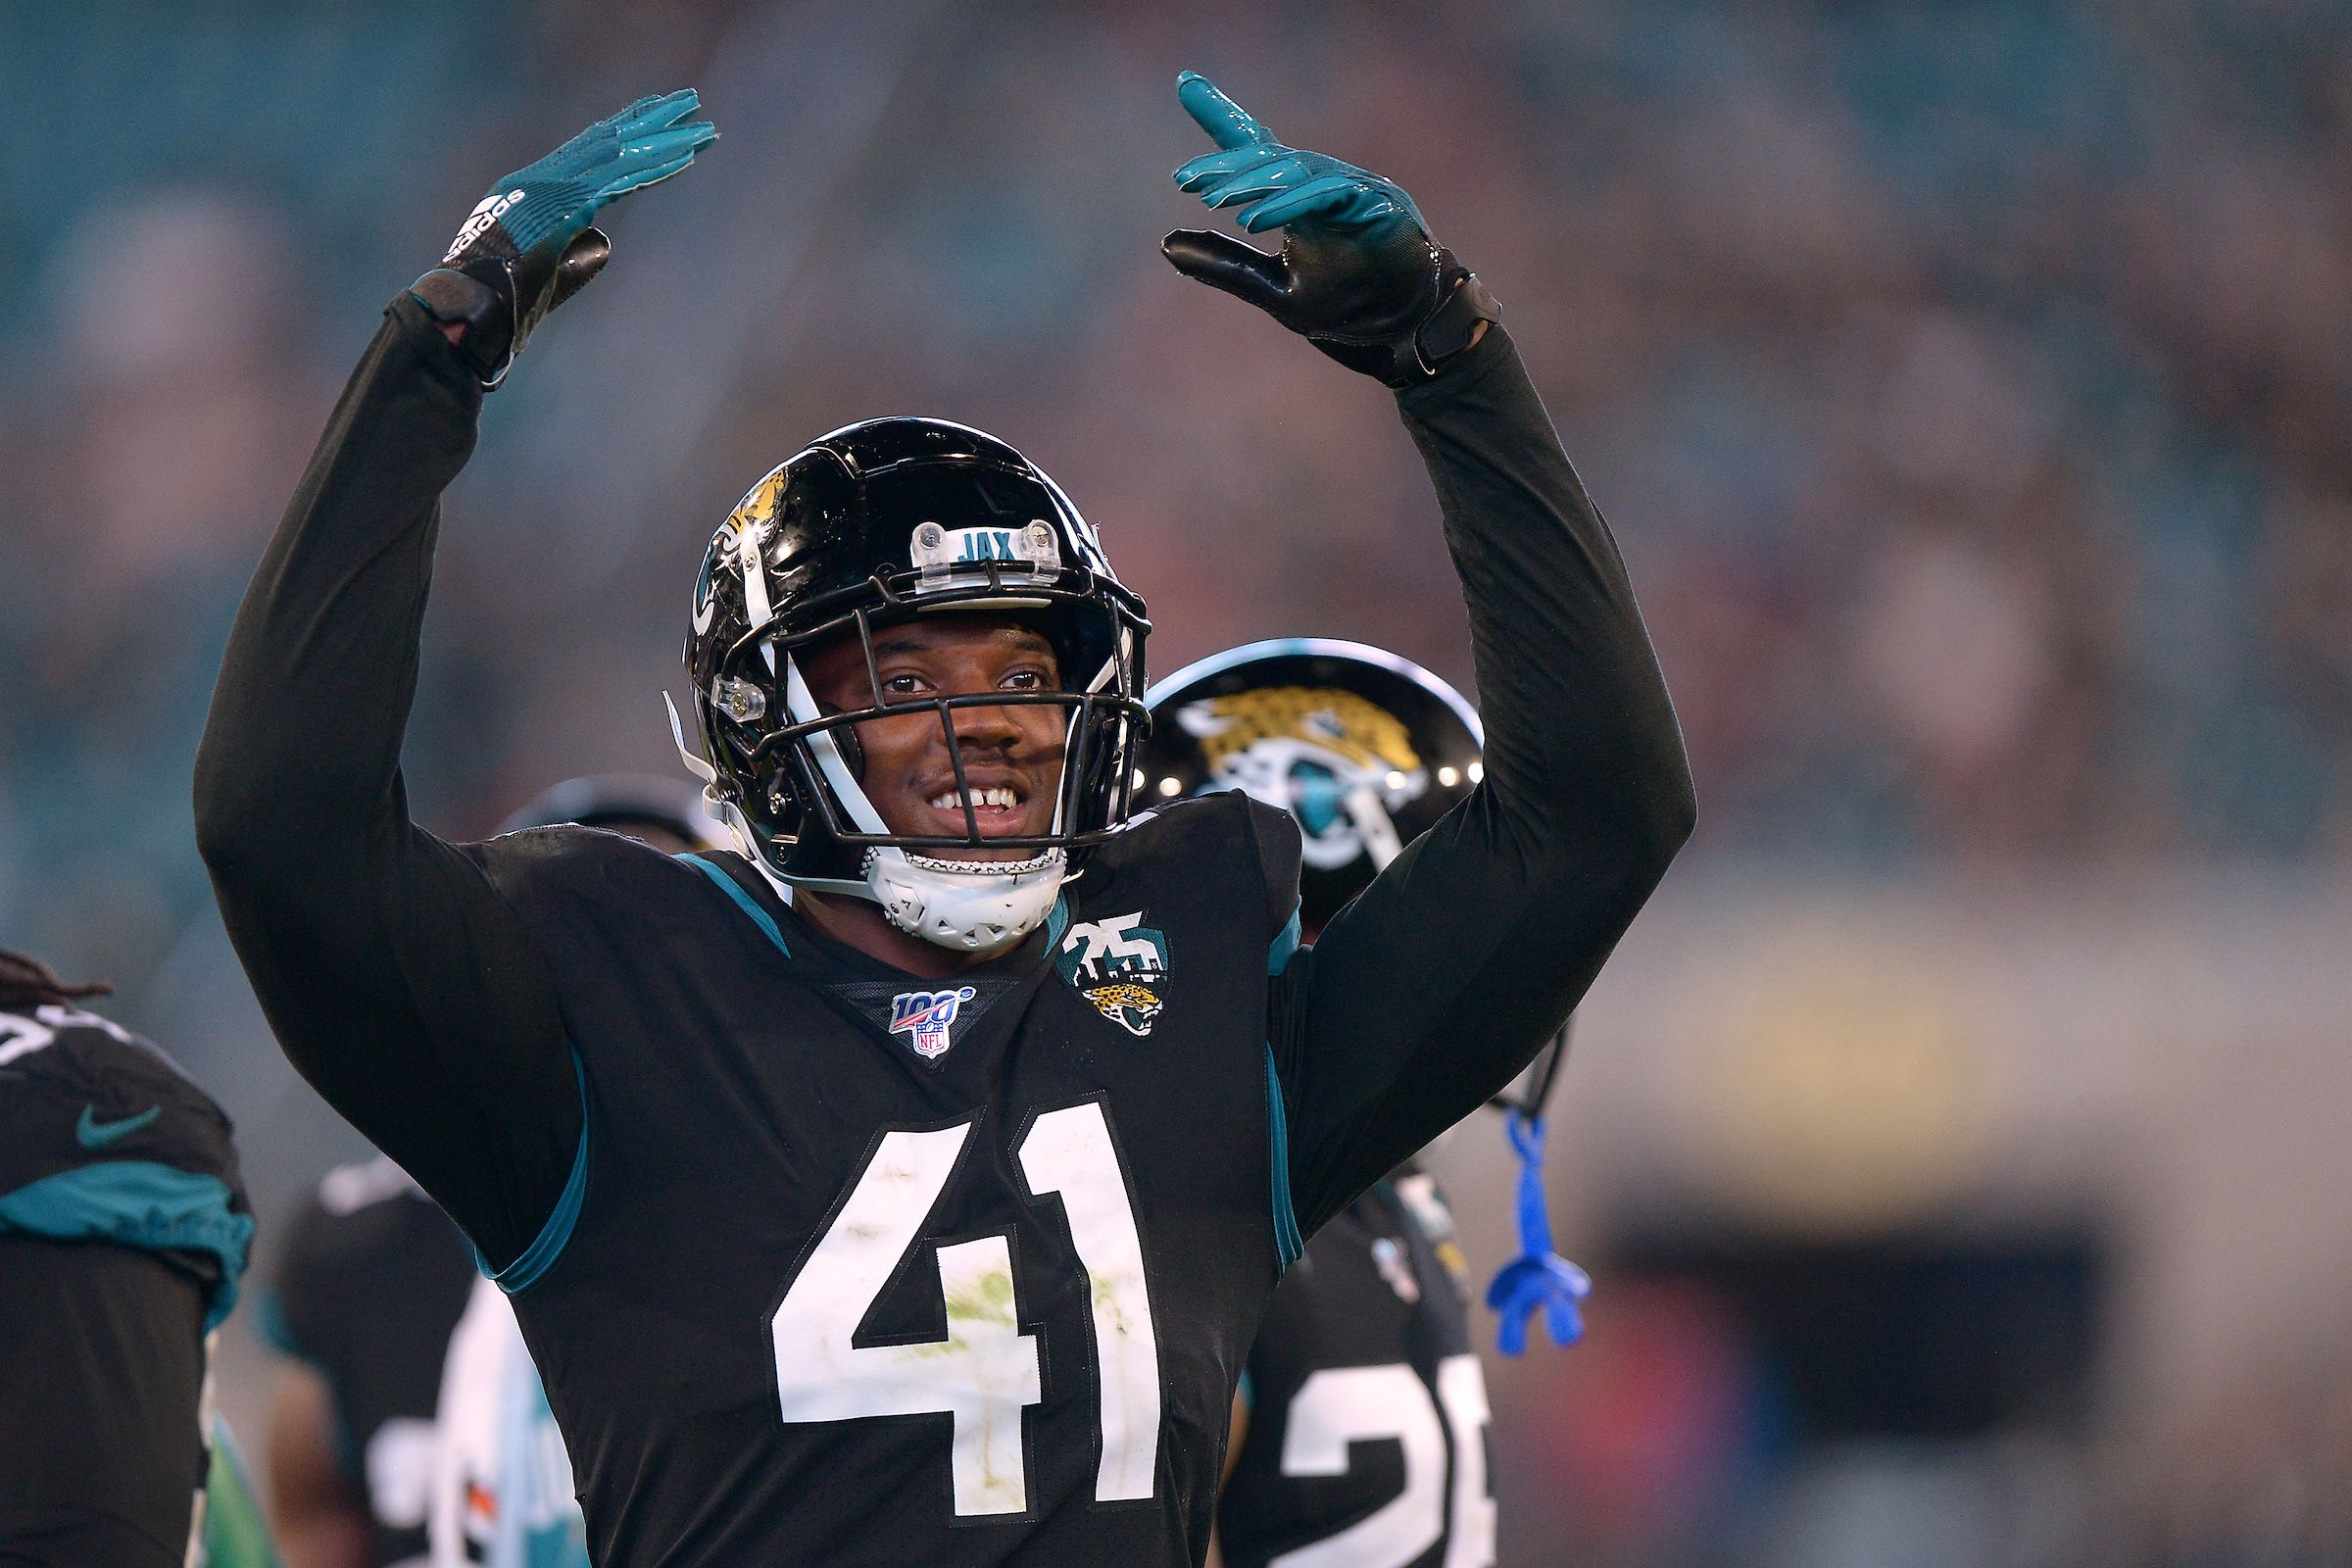 Jacksonville Jaguars rookie defensive end Josh Allen (41) encourages the fans to get loud against the Indianapolis Colts in an NFL game, Sunday, Dec. 29, 2019 in Jacksonville, Fla. (Rick Wilson/Jacksonville Jaguars)